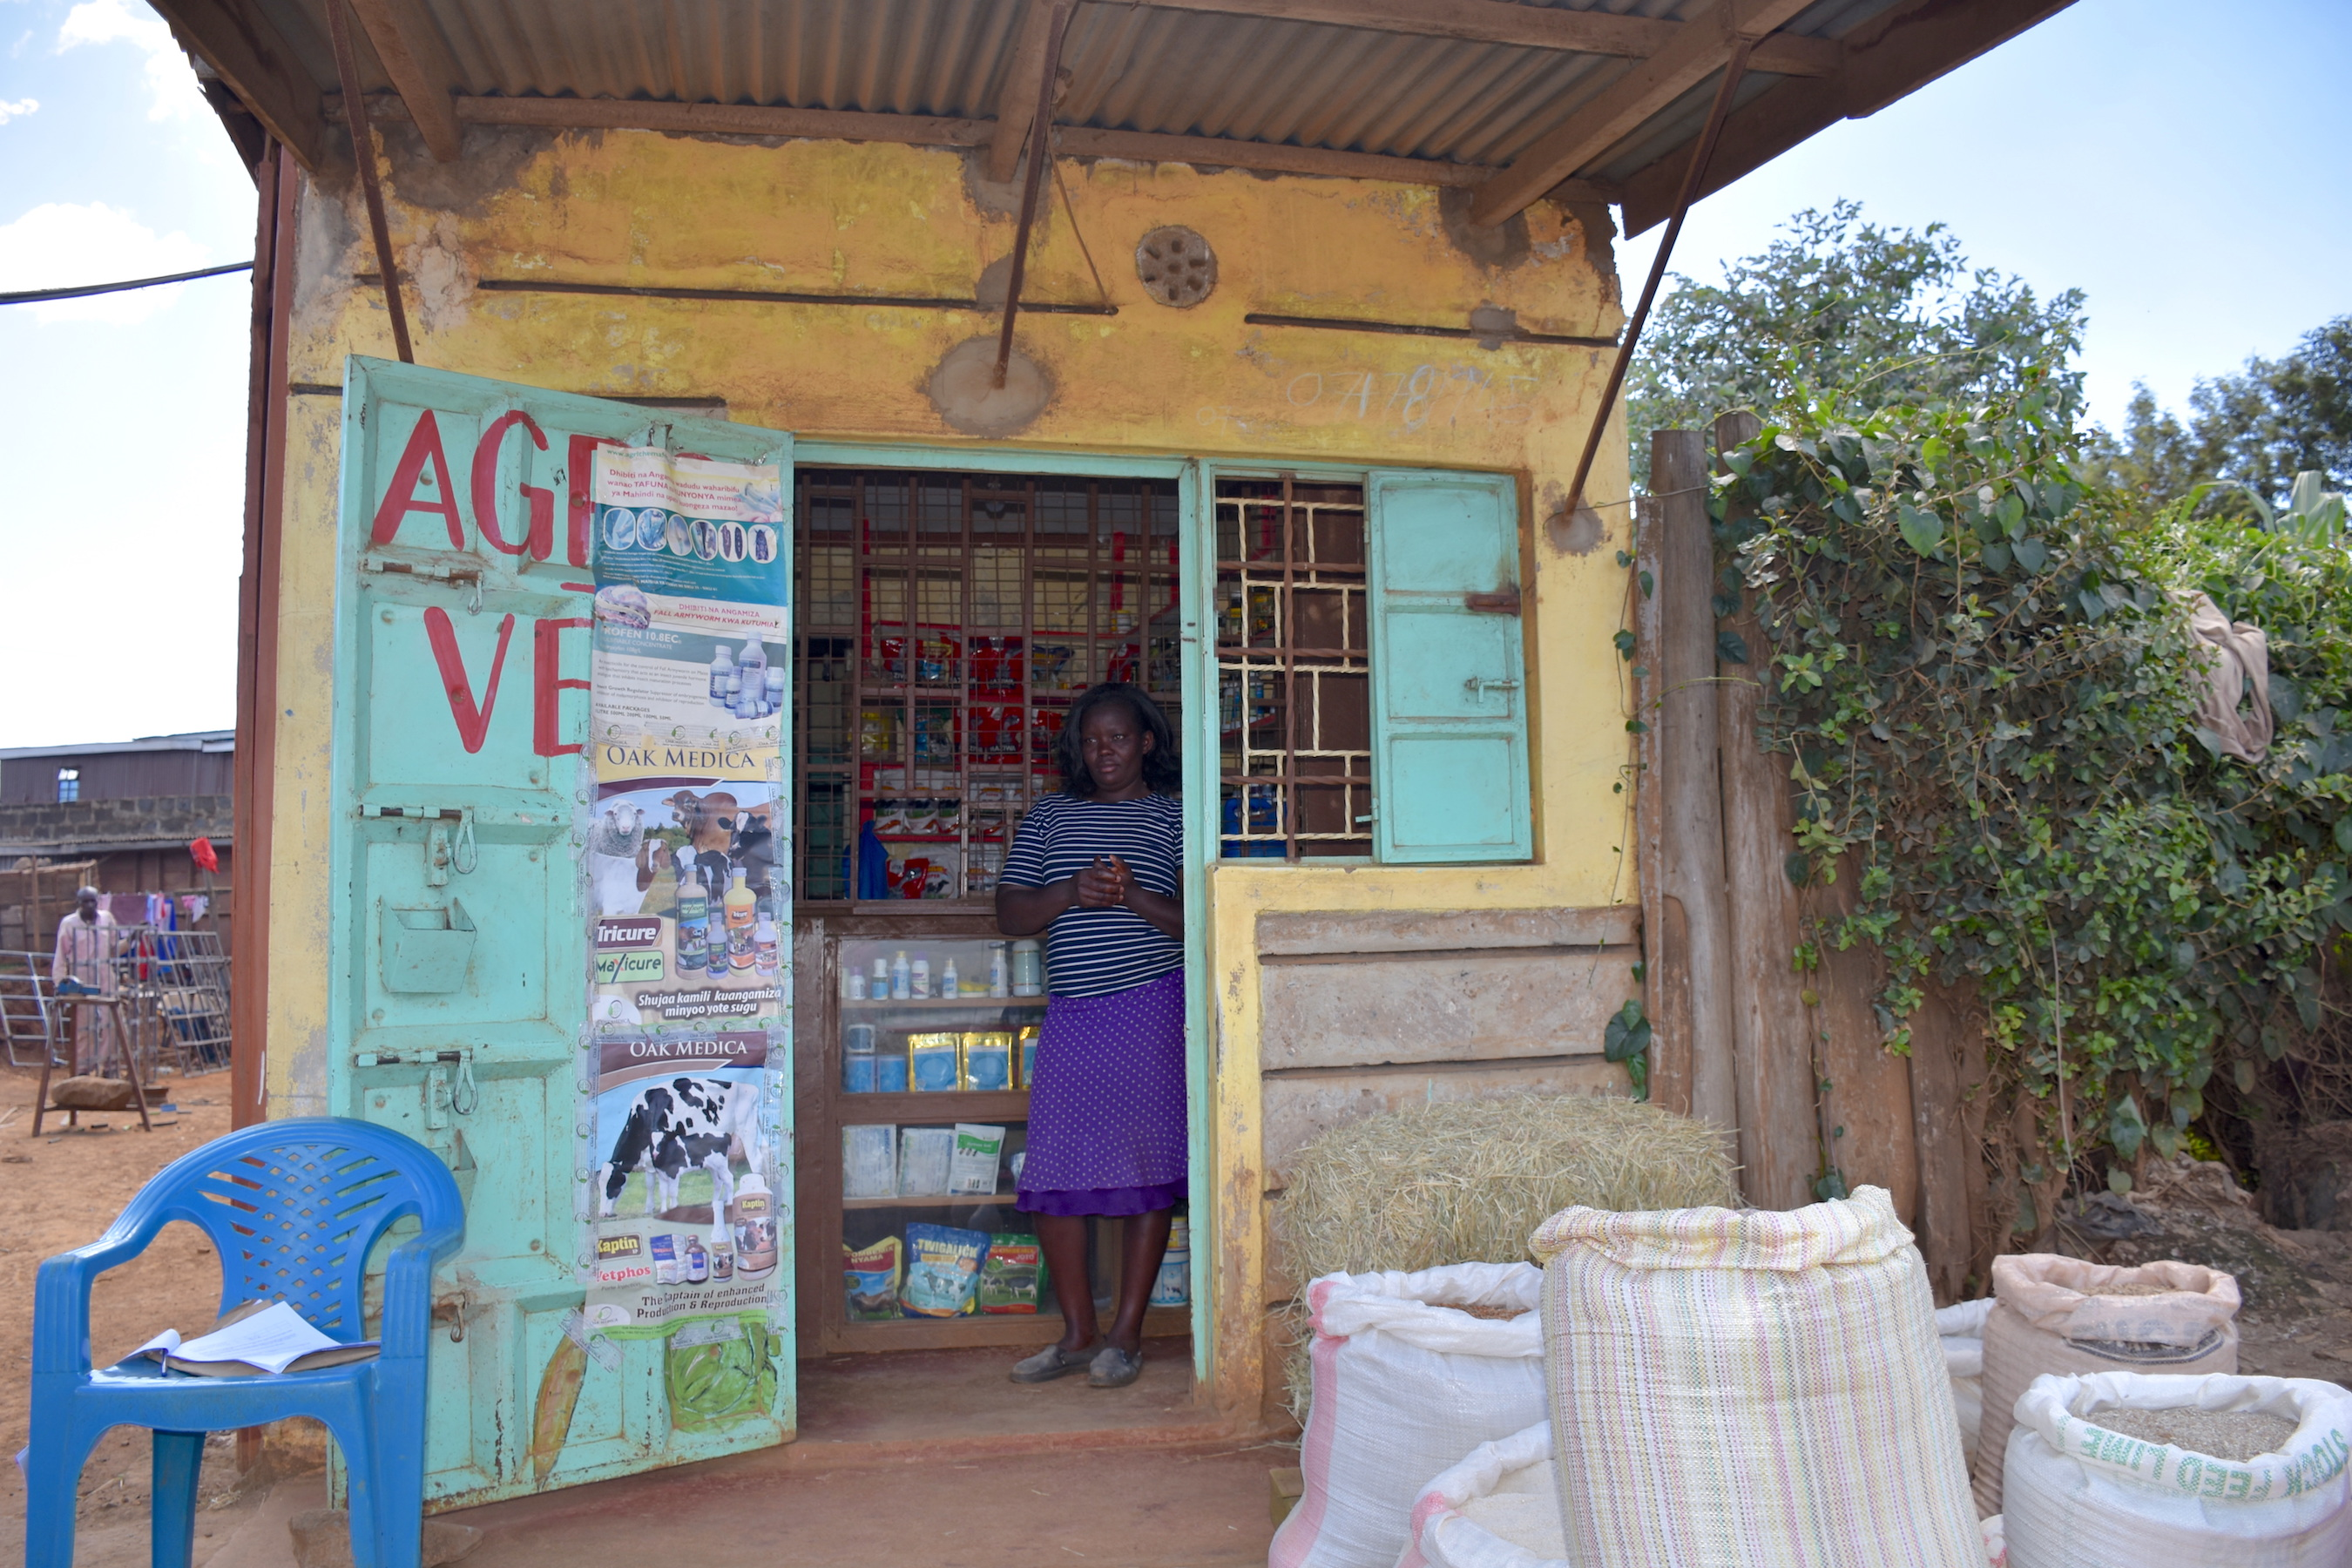 Philomena Muthoni Mwangi stands at the entrance of her agrodealer shop, Farm Care, in the village of Ngarariga. (Photo: Jerome Bossuet/CIMMYT)